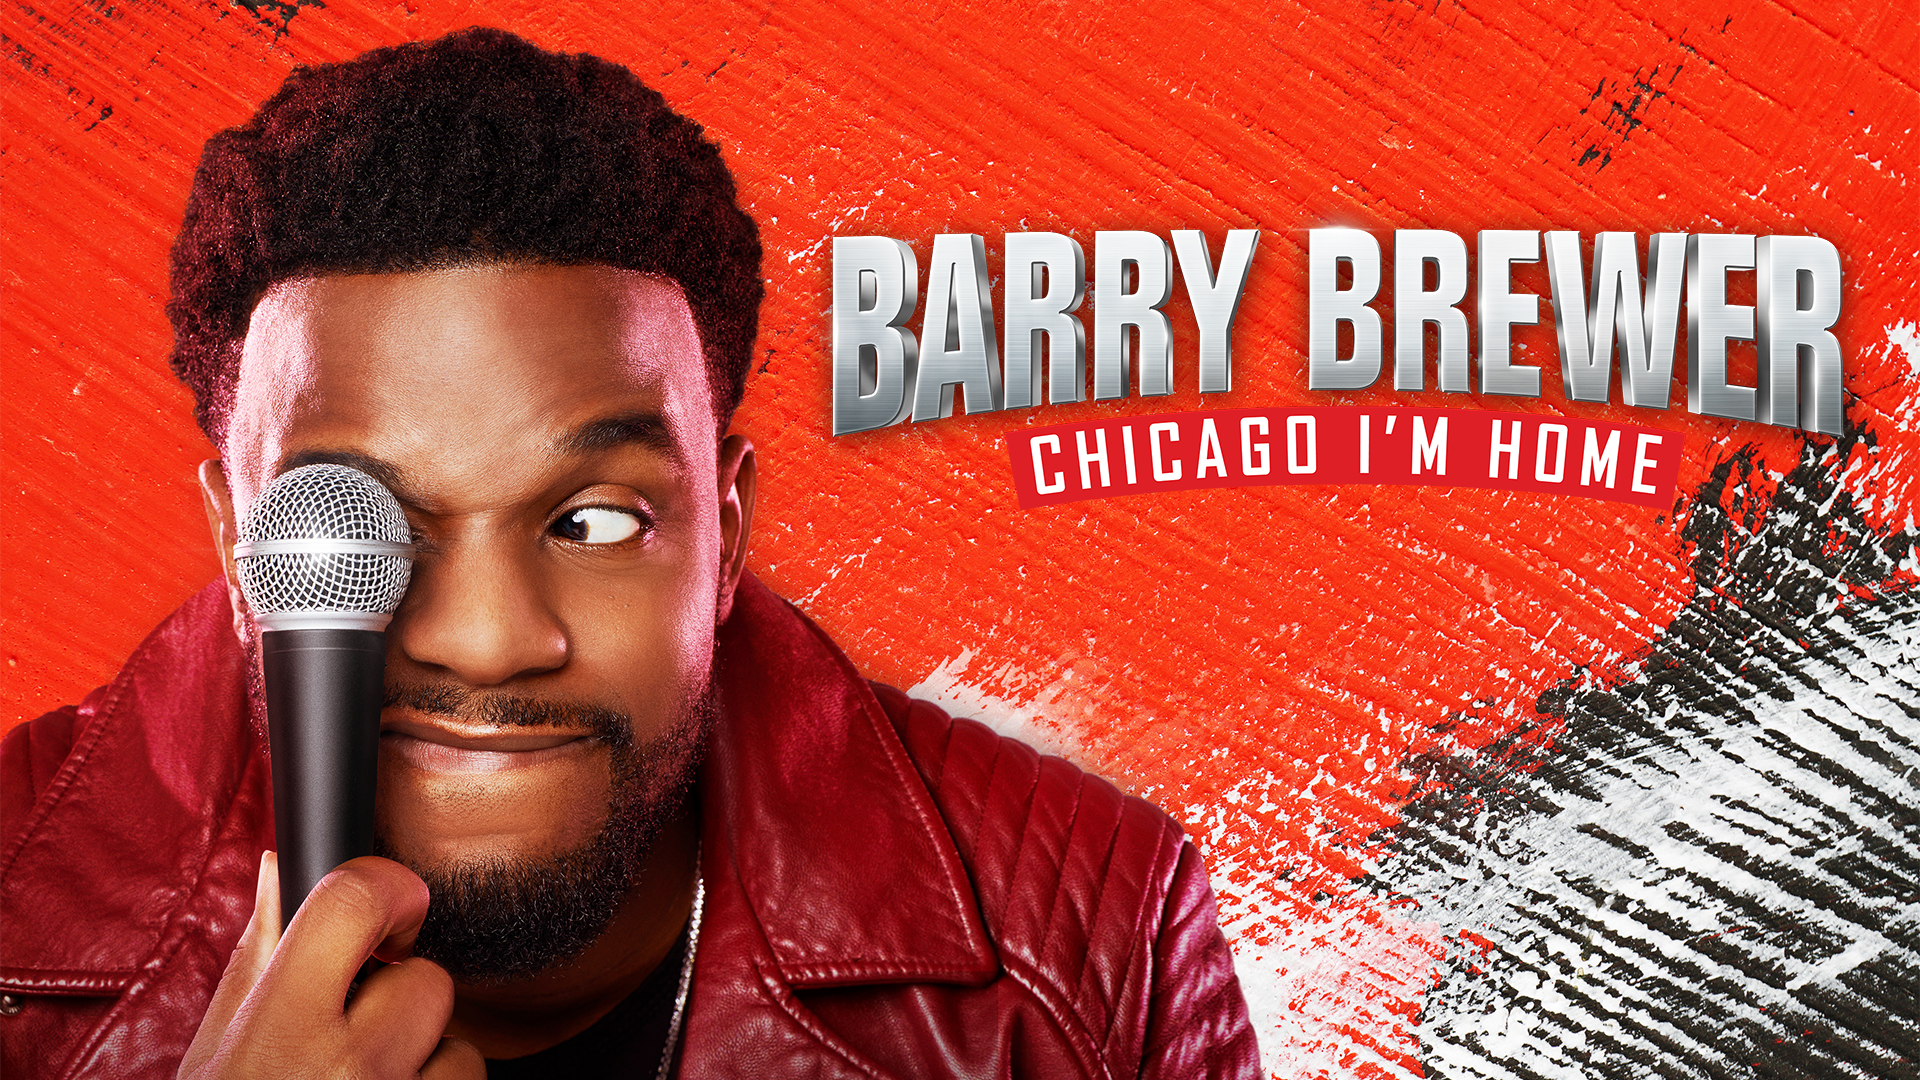 Barry Brewer: Chicago, I'm Home